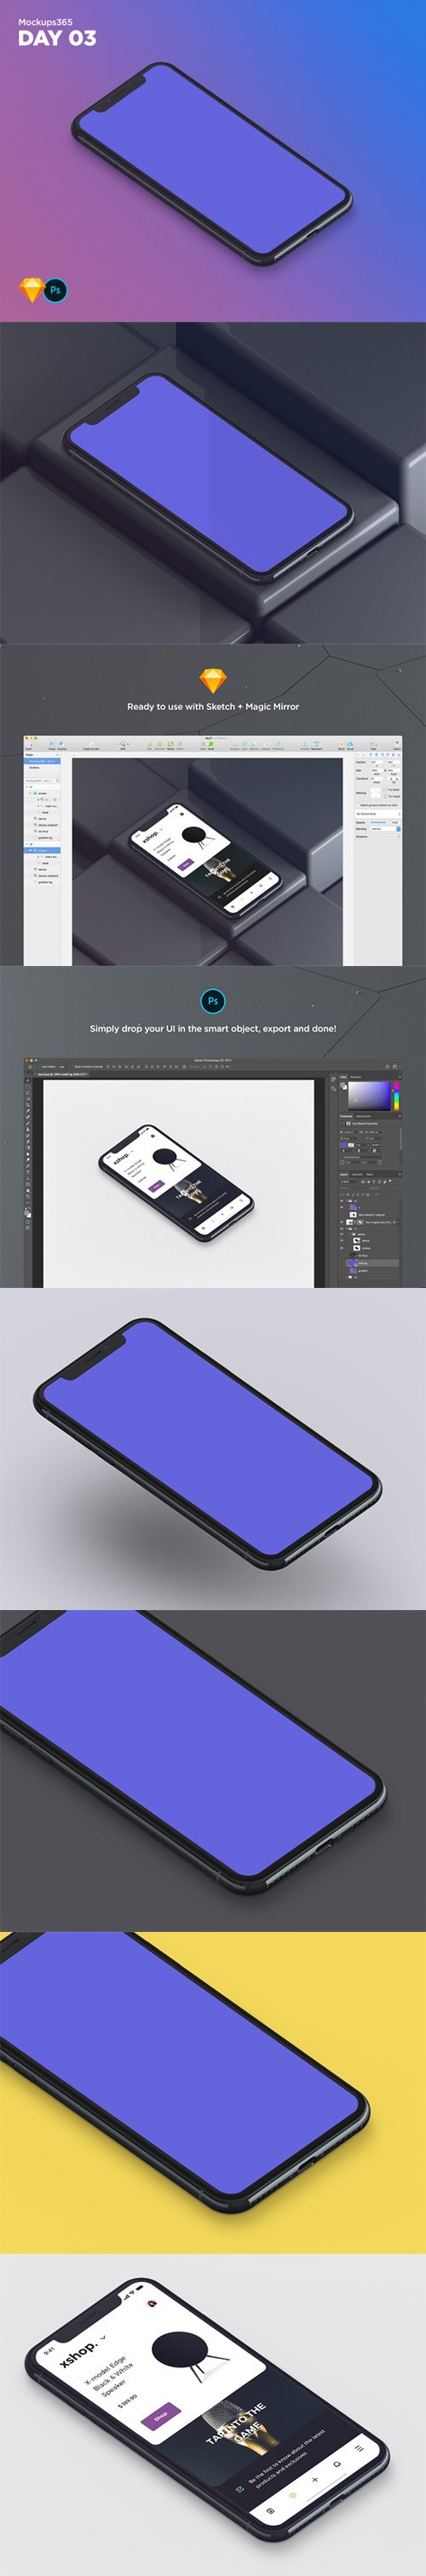 Mockups365: Day 3 - Realistic iPhone X isometric mockup for Sketch & Photoshop